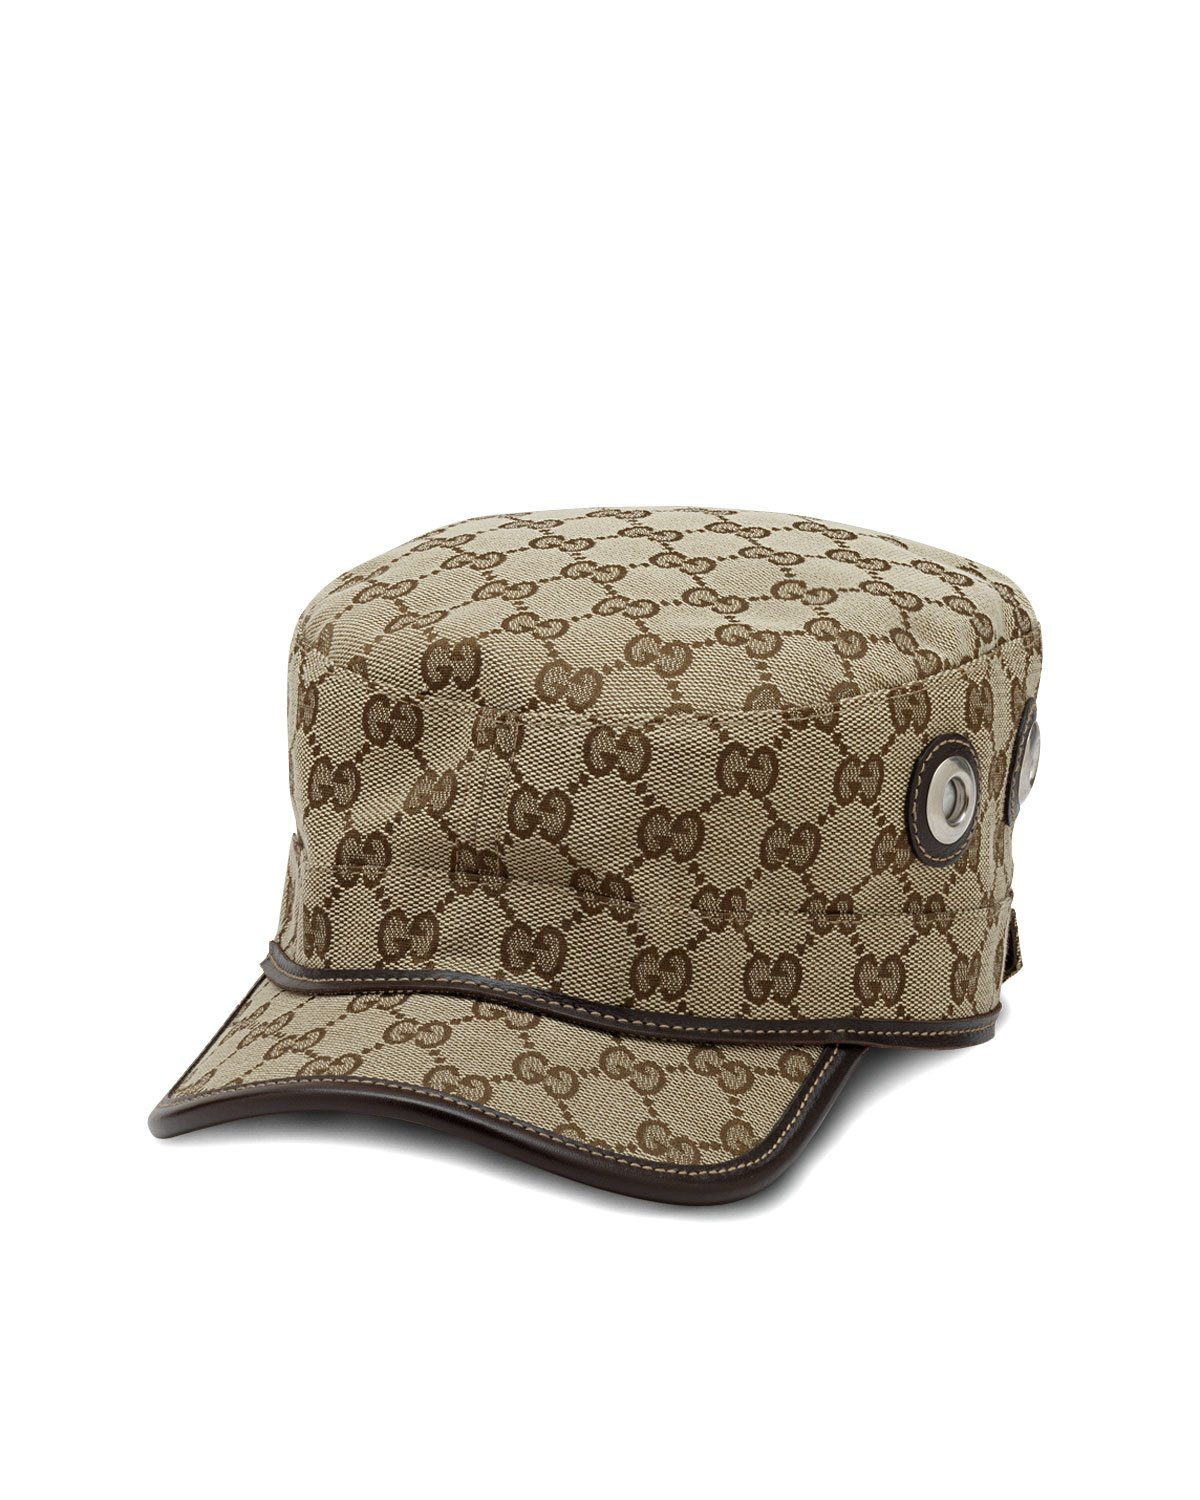 Lyst - Gucci Canvas Military Hat in Natural ff7cf20dc5ac